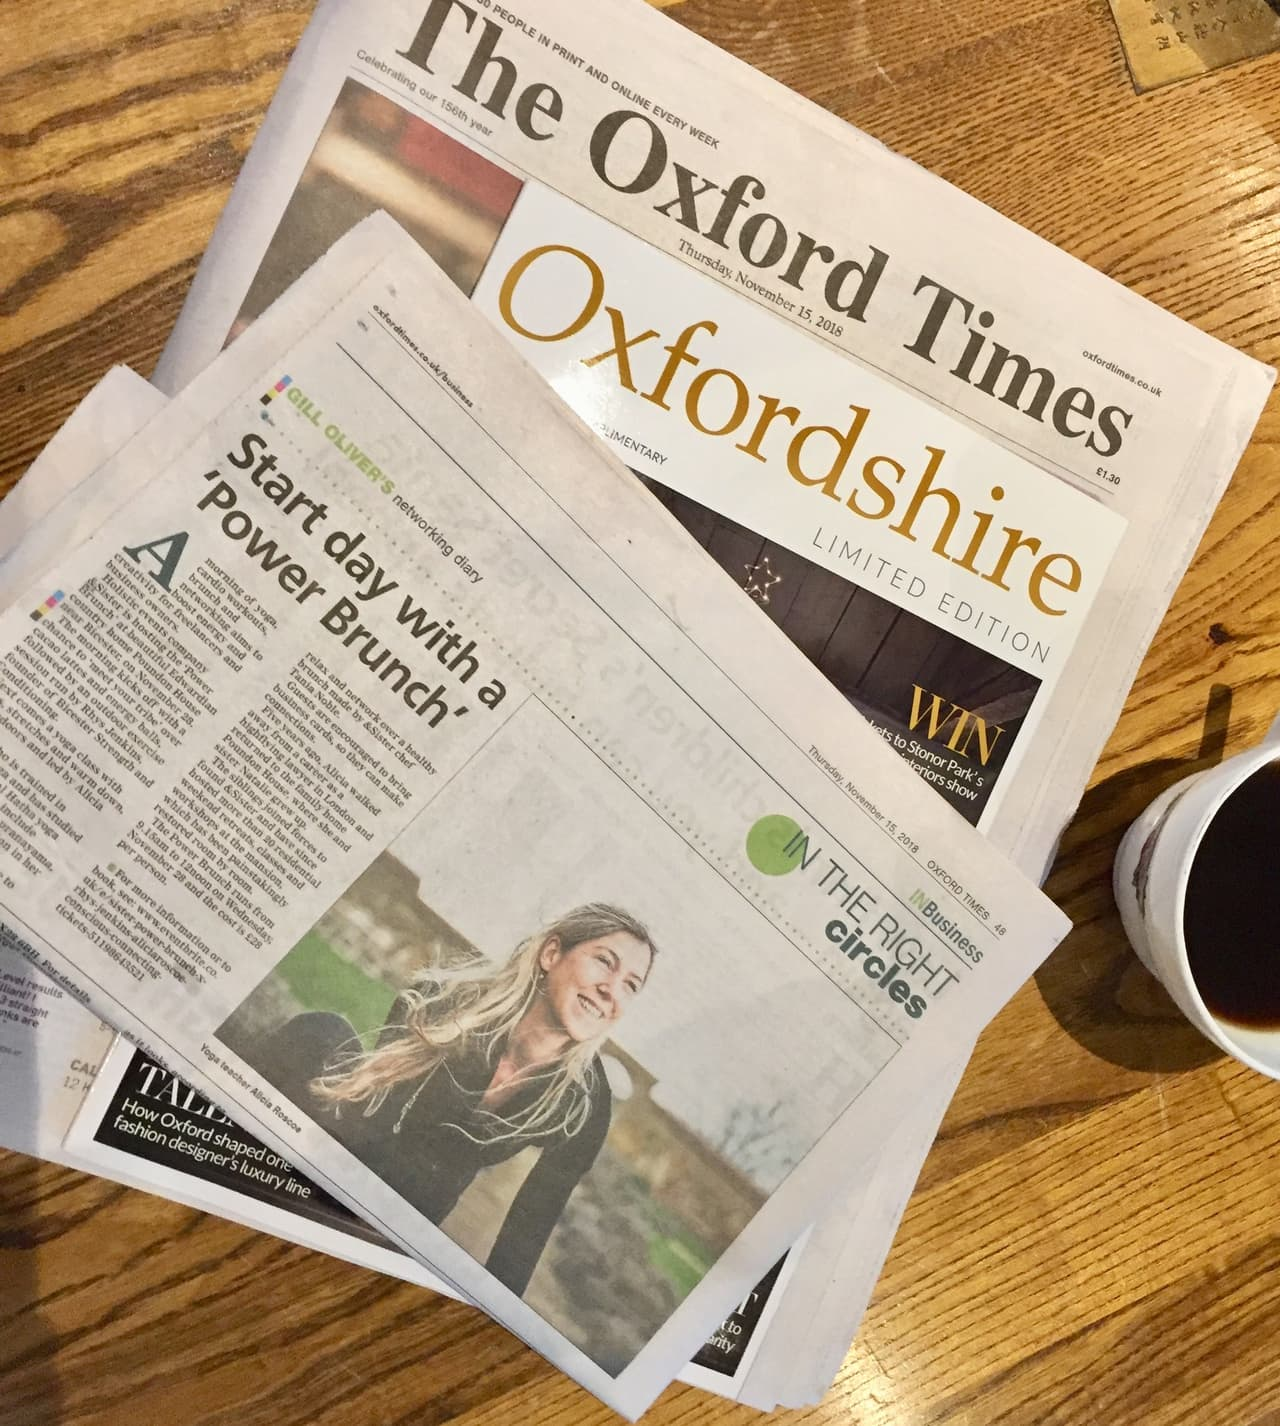 Alicia is interviewed by The Oxford Times Limited Edition